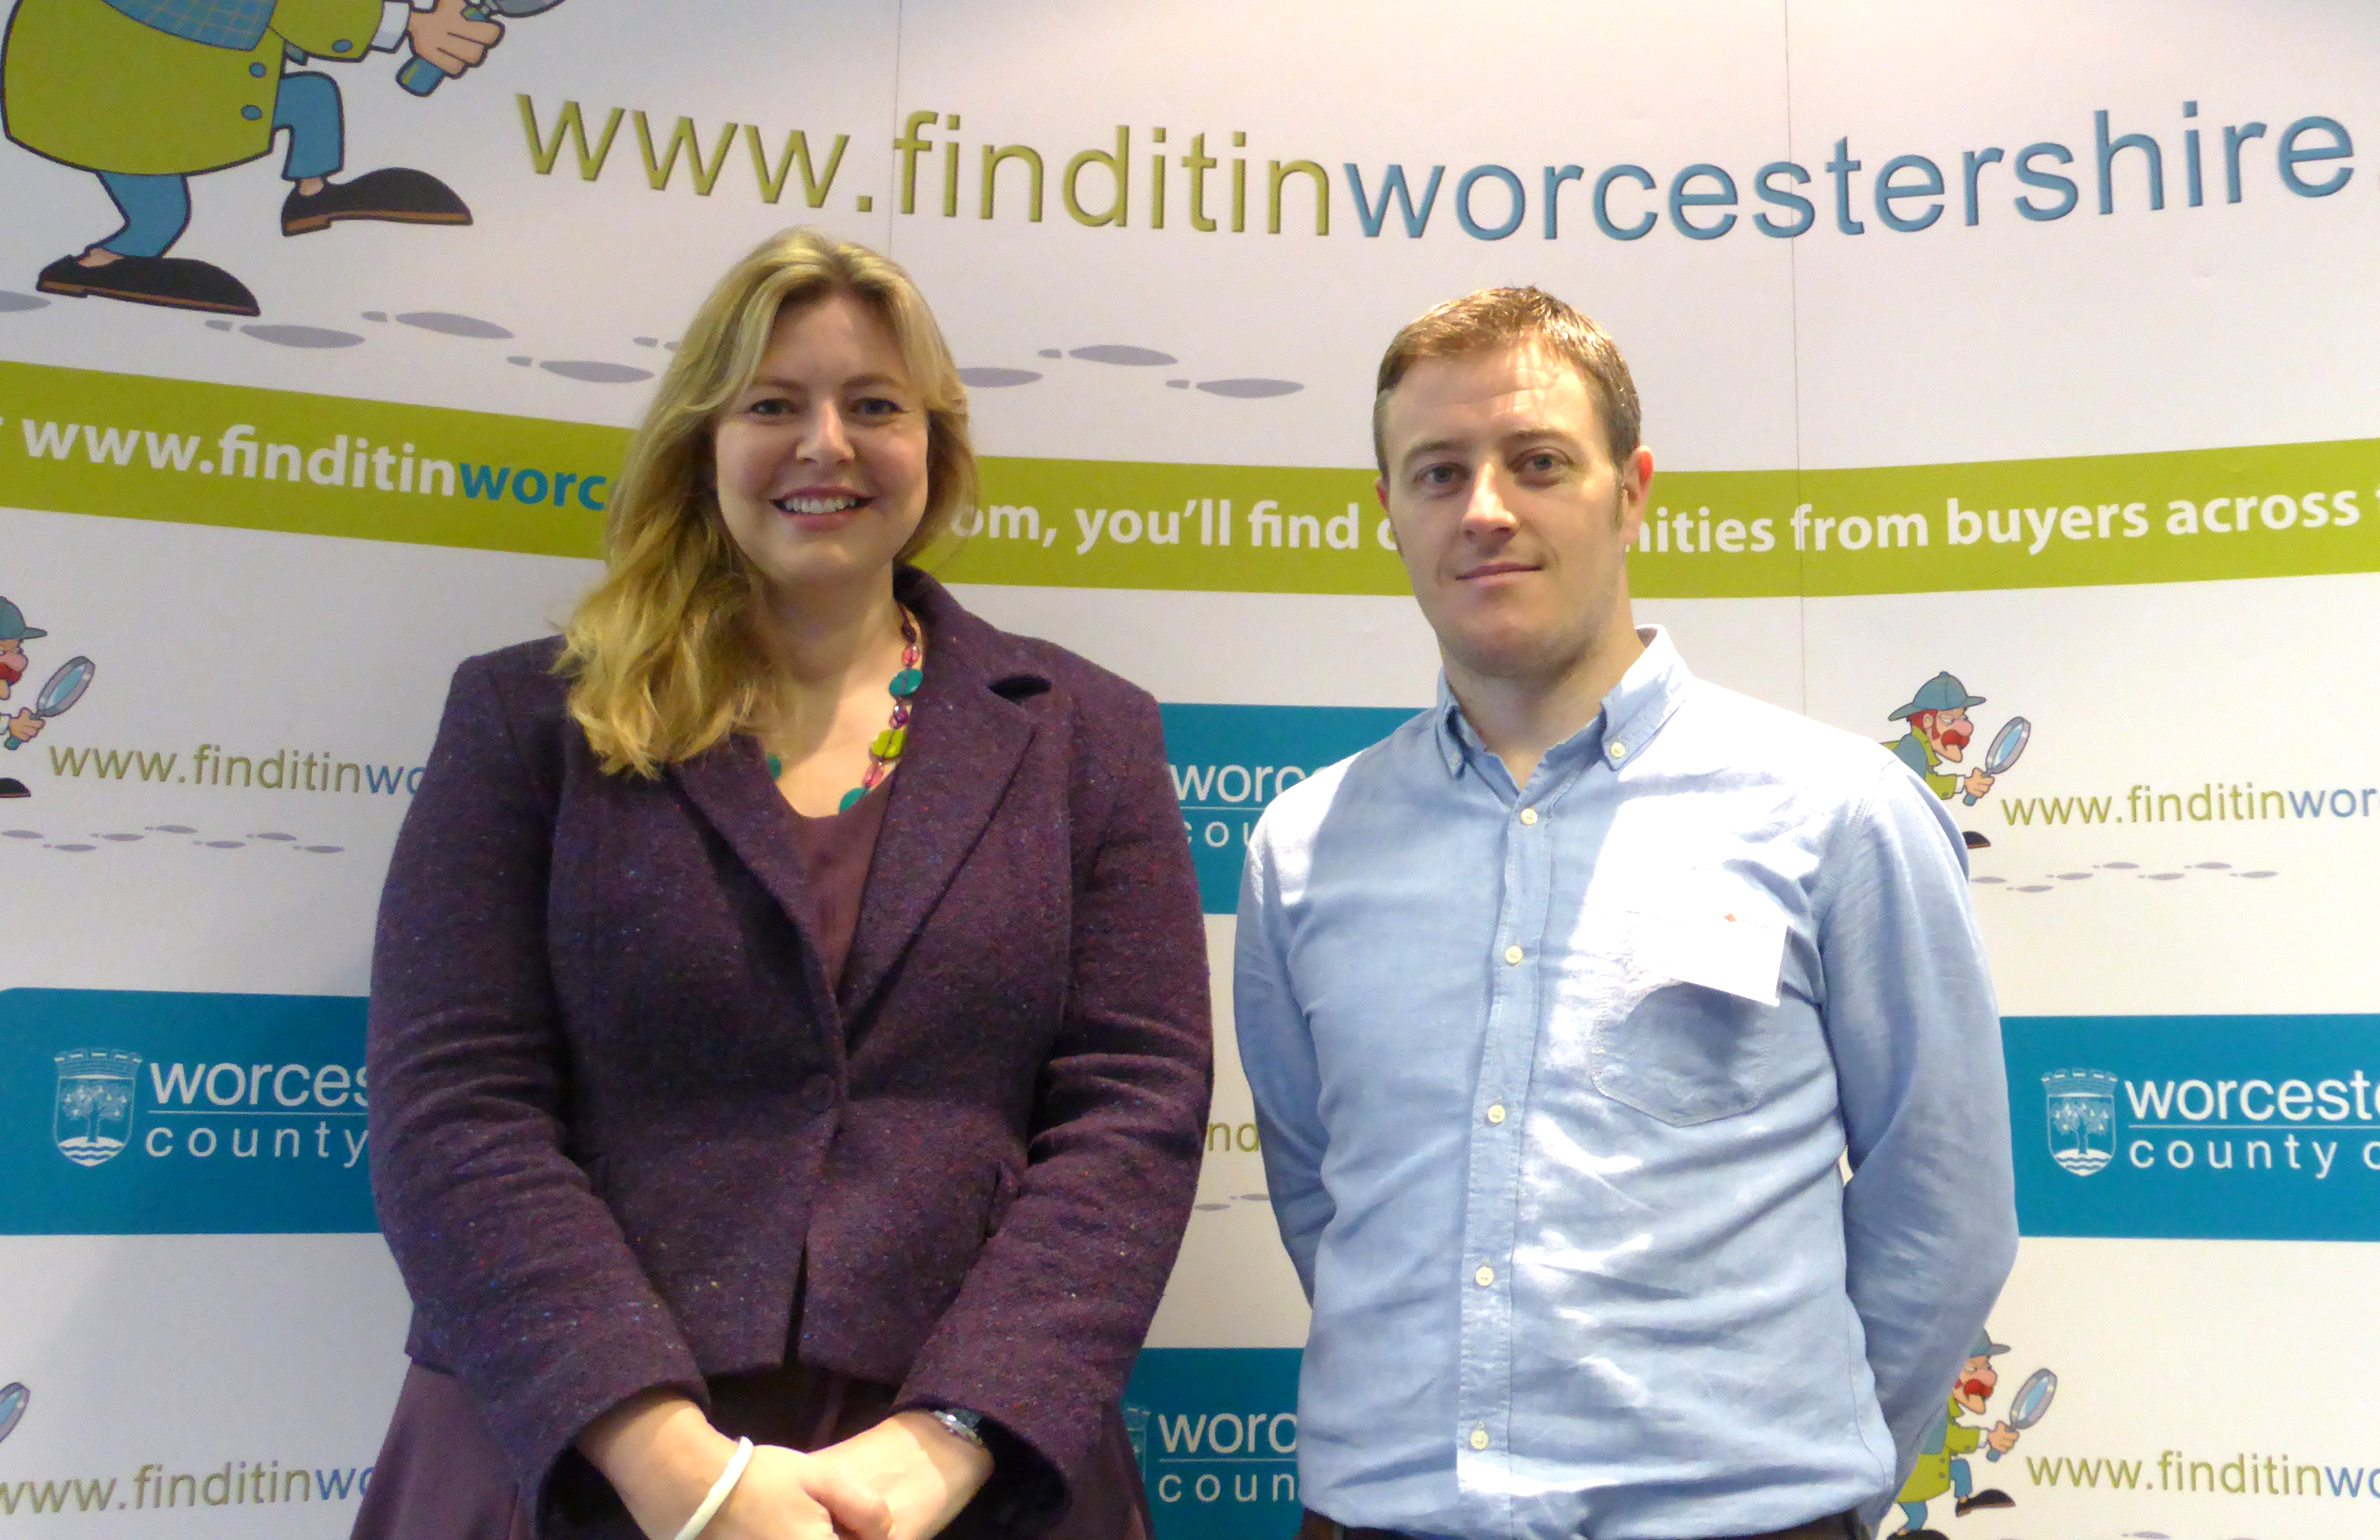 Kathryn Wagstaff, Finditinworcestershire Project Manager and Business Relationship Manager at Worcestershire County Council, with Ben Barnes, Ventutec